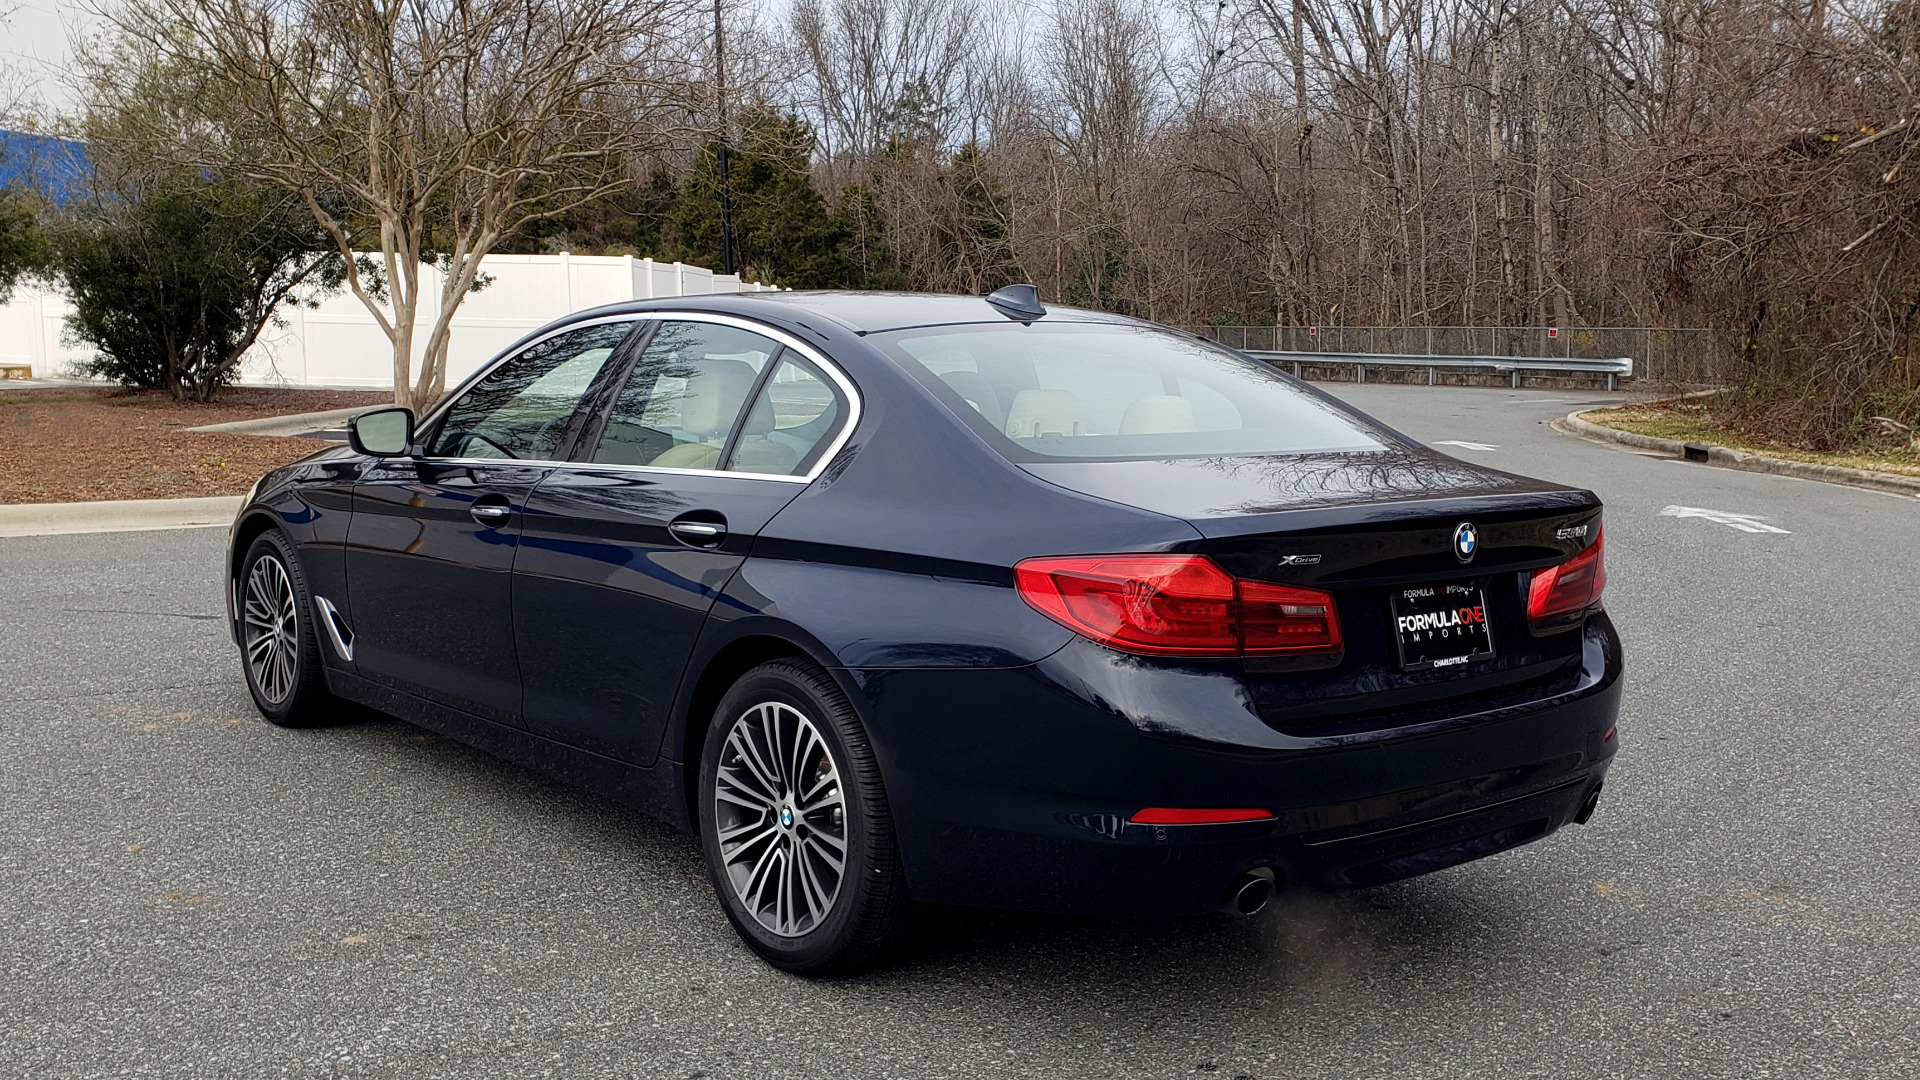 Used 2017 BMW 5 SERIES 530i XDRIVE / SPORTLINE / NAV / SNRF / HTD STS / REARVIEW for sale Sold at Formula Imports in Charlotte NC 28227 3